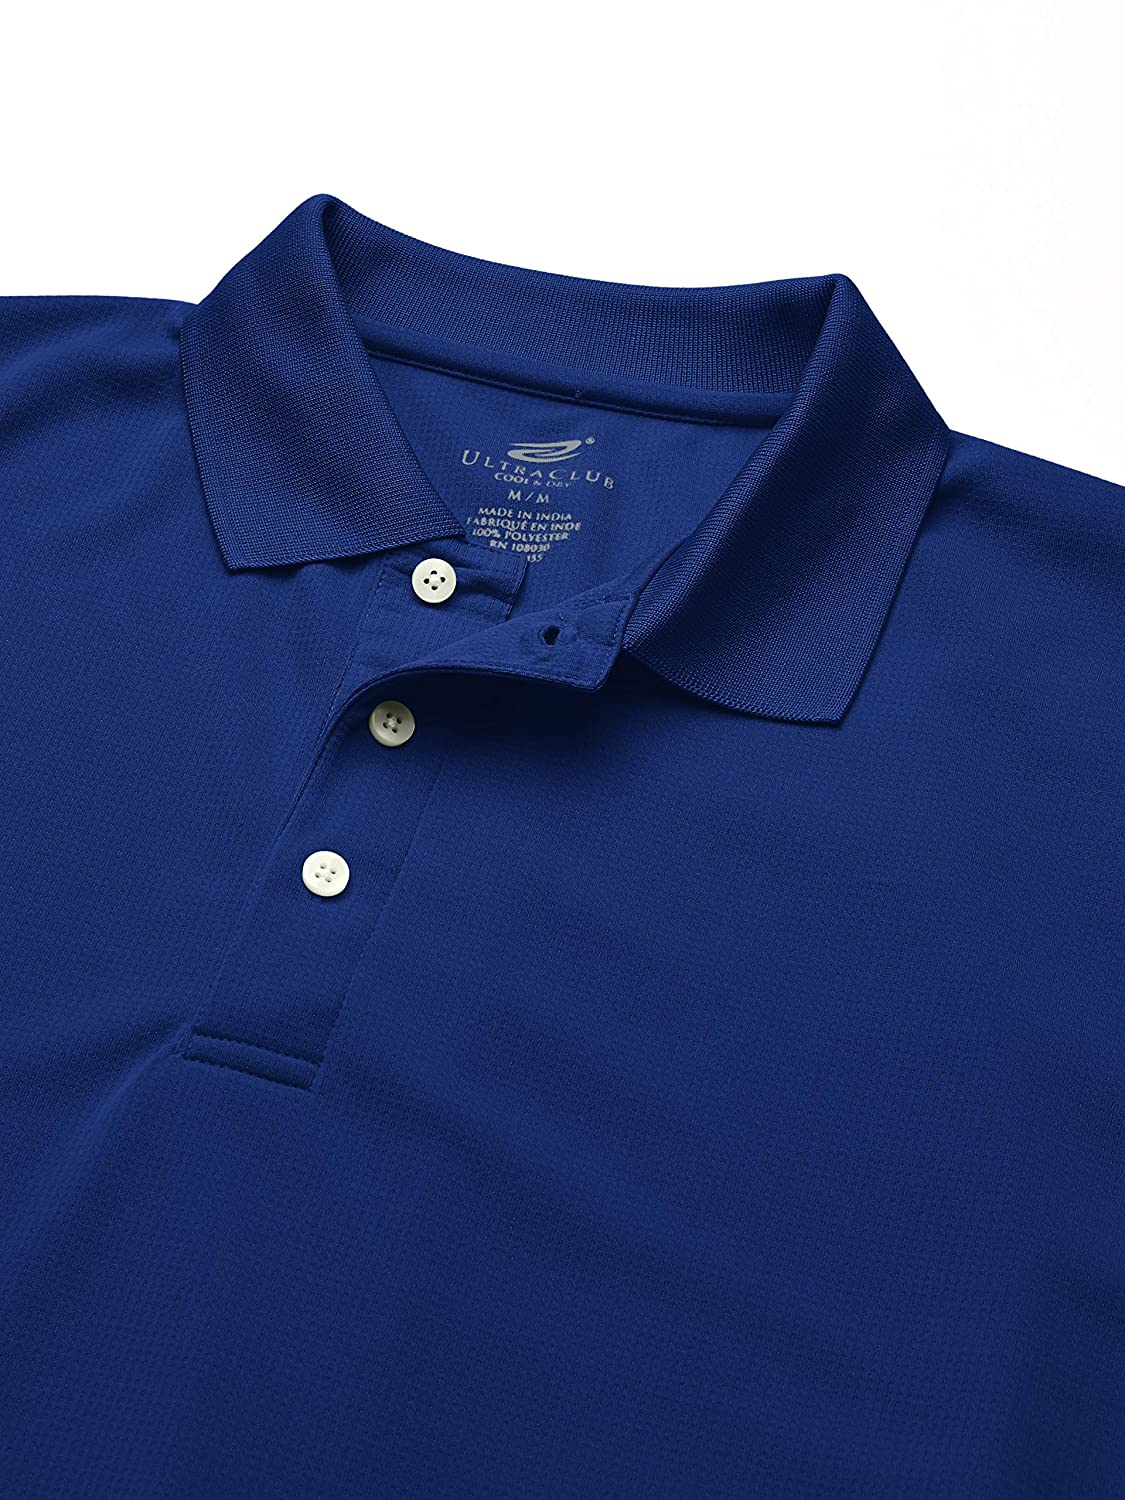 Clementine Mens Ultc-8445-cool /& Dry Stain-Release Performance Polo